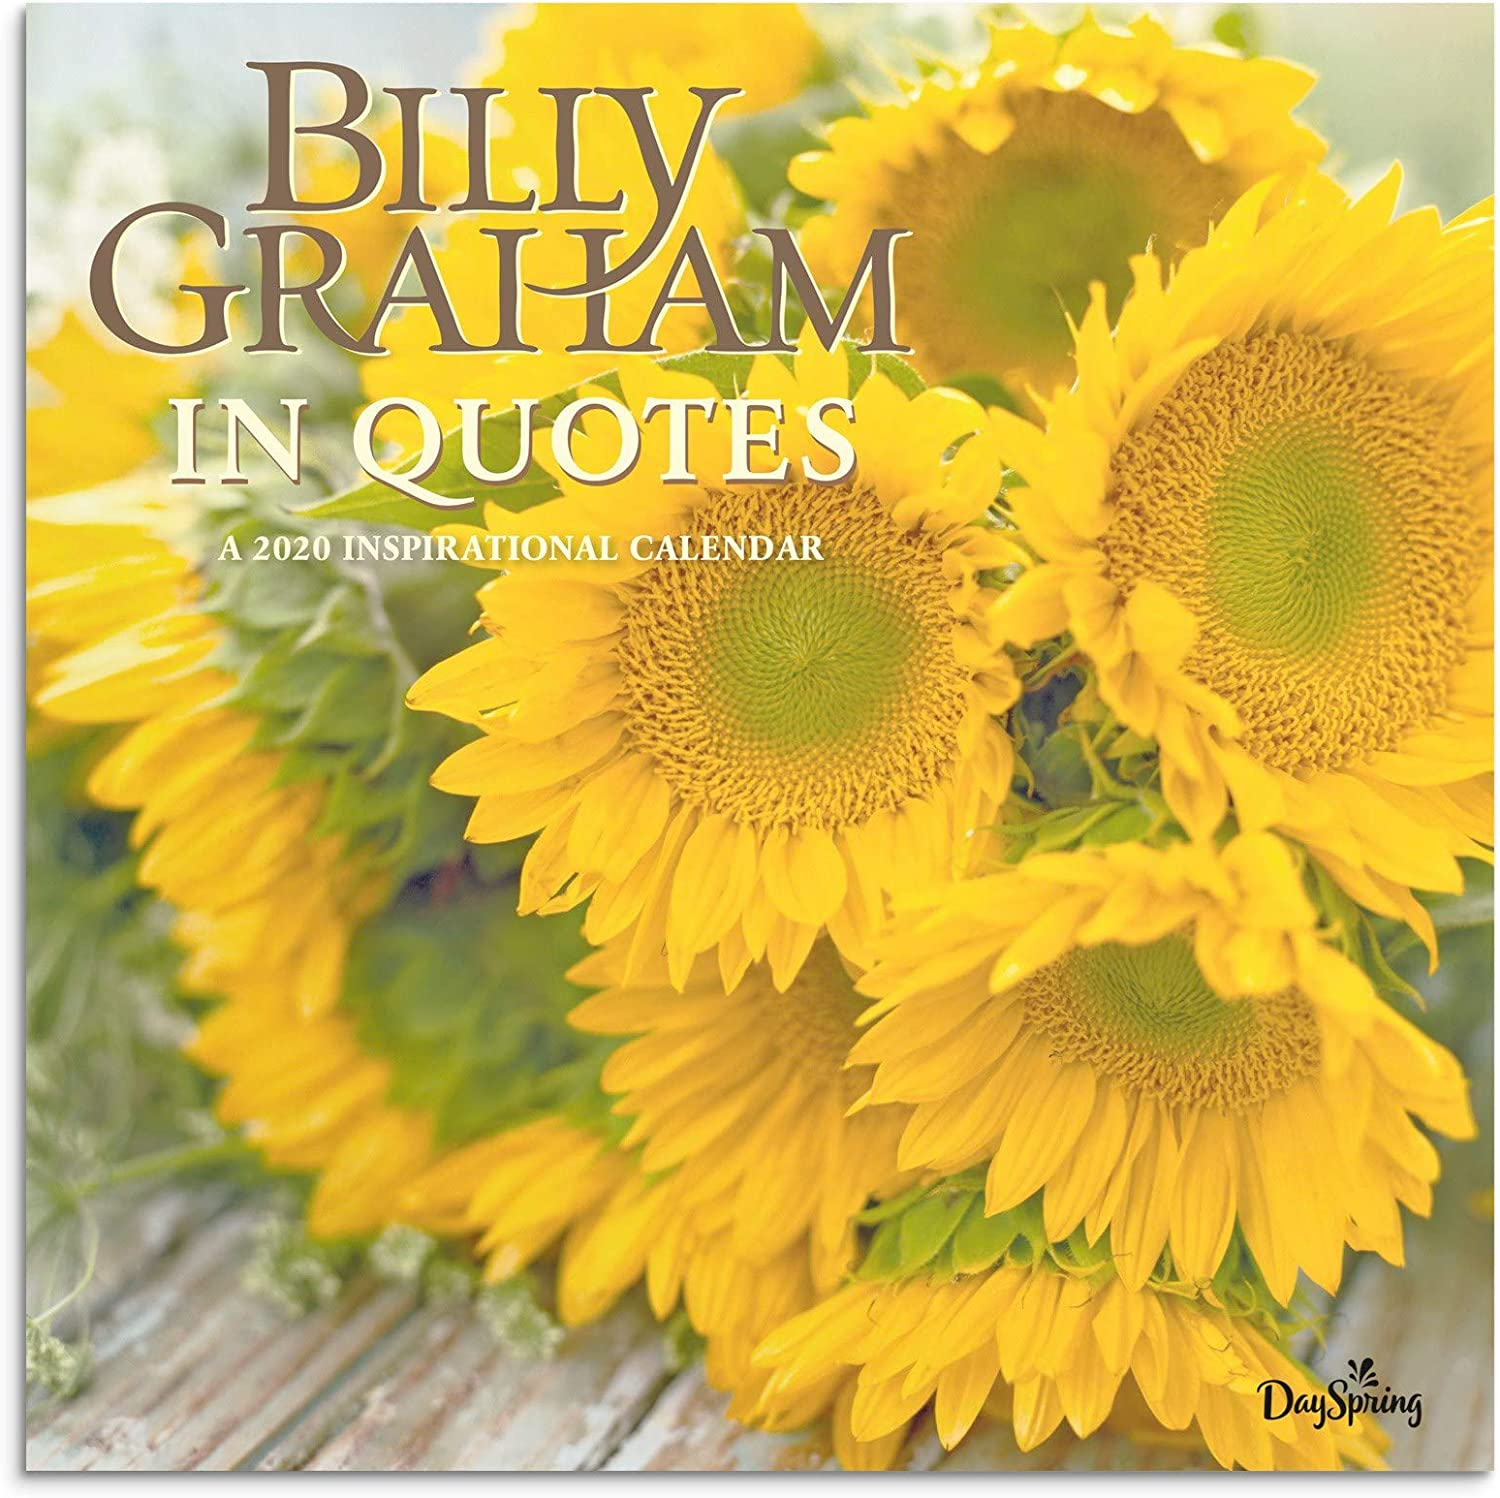 Billy Graham 2020 Christmas Schedule Amazon.: DaySpring Billy Graham In Quotes   2020 Wall Calendar